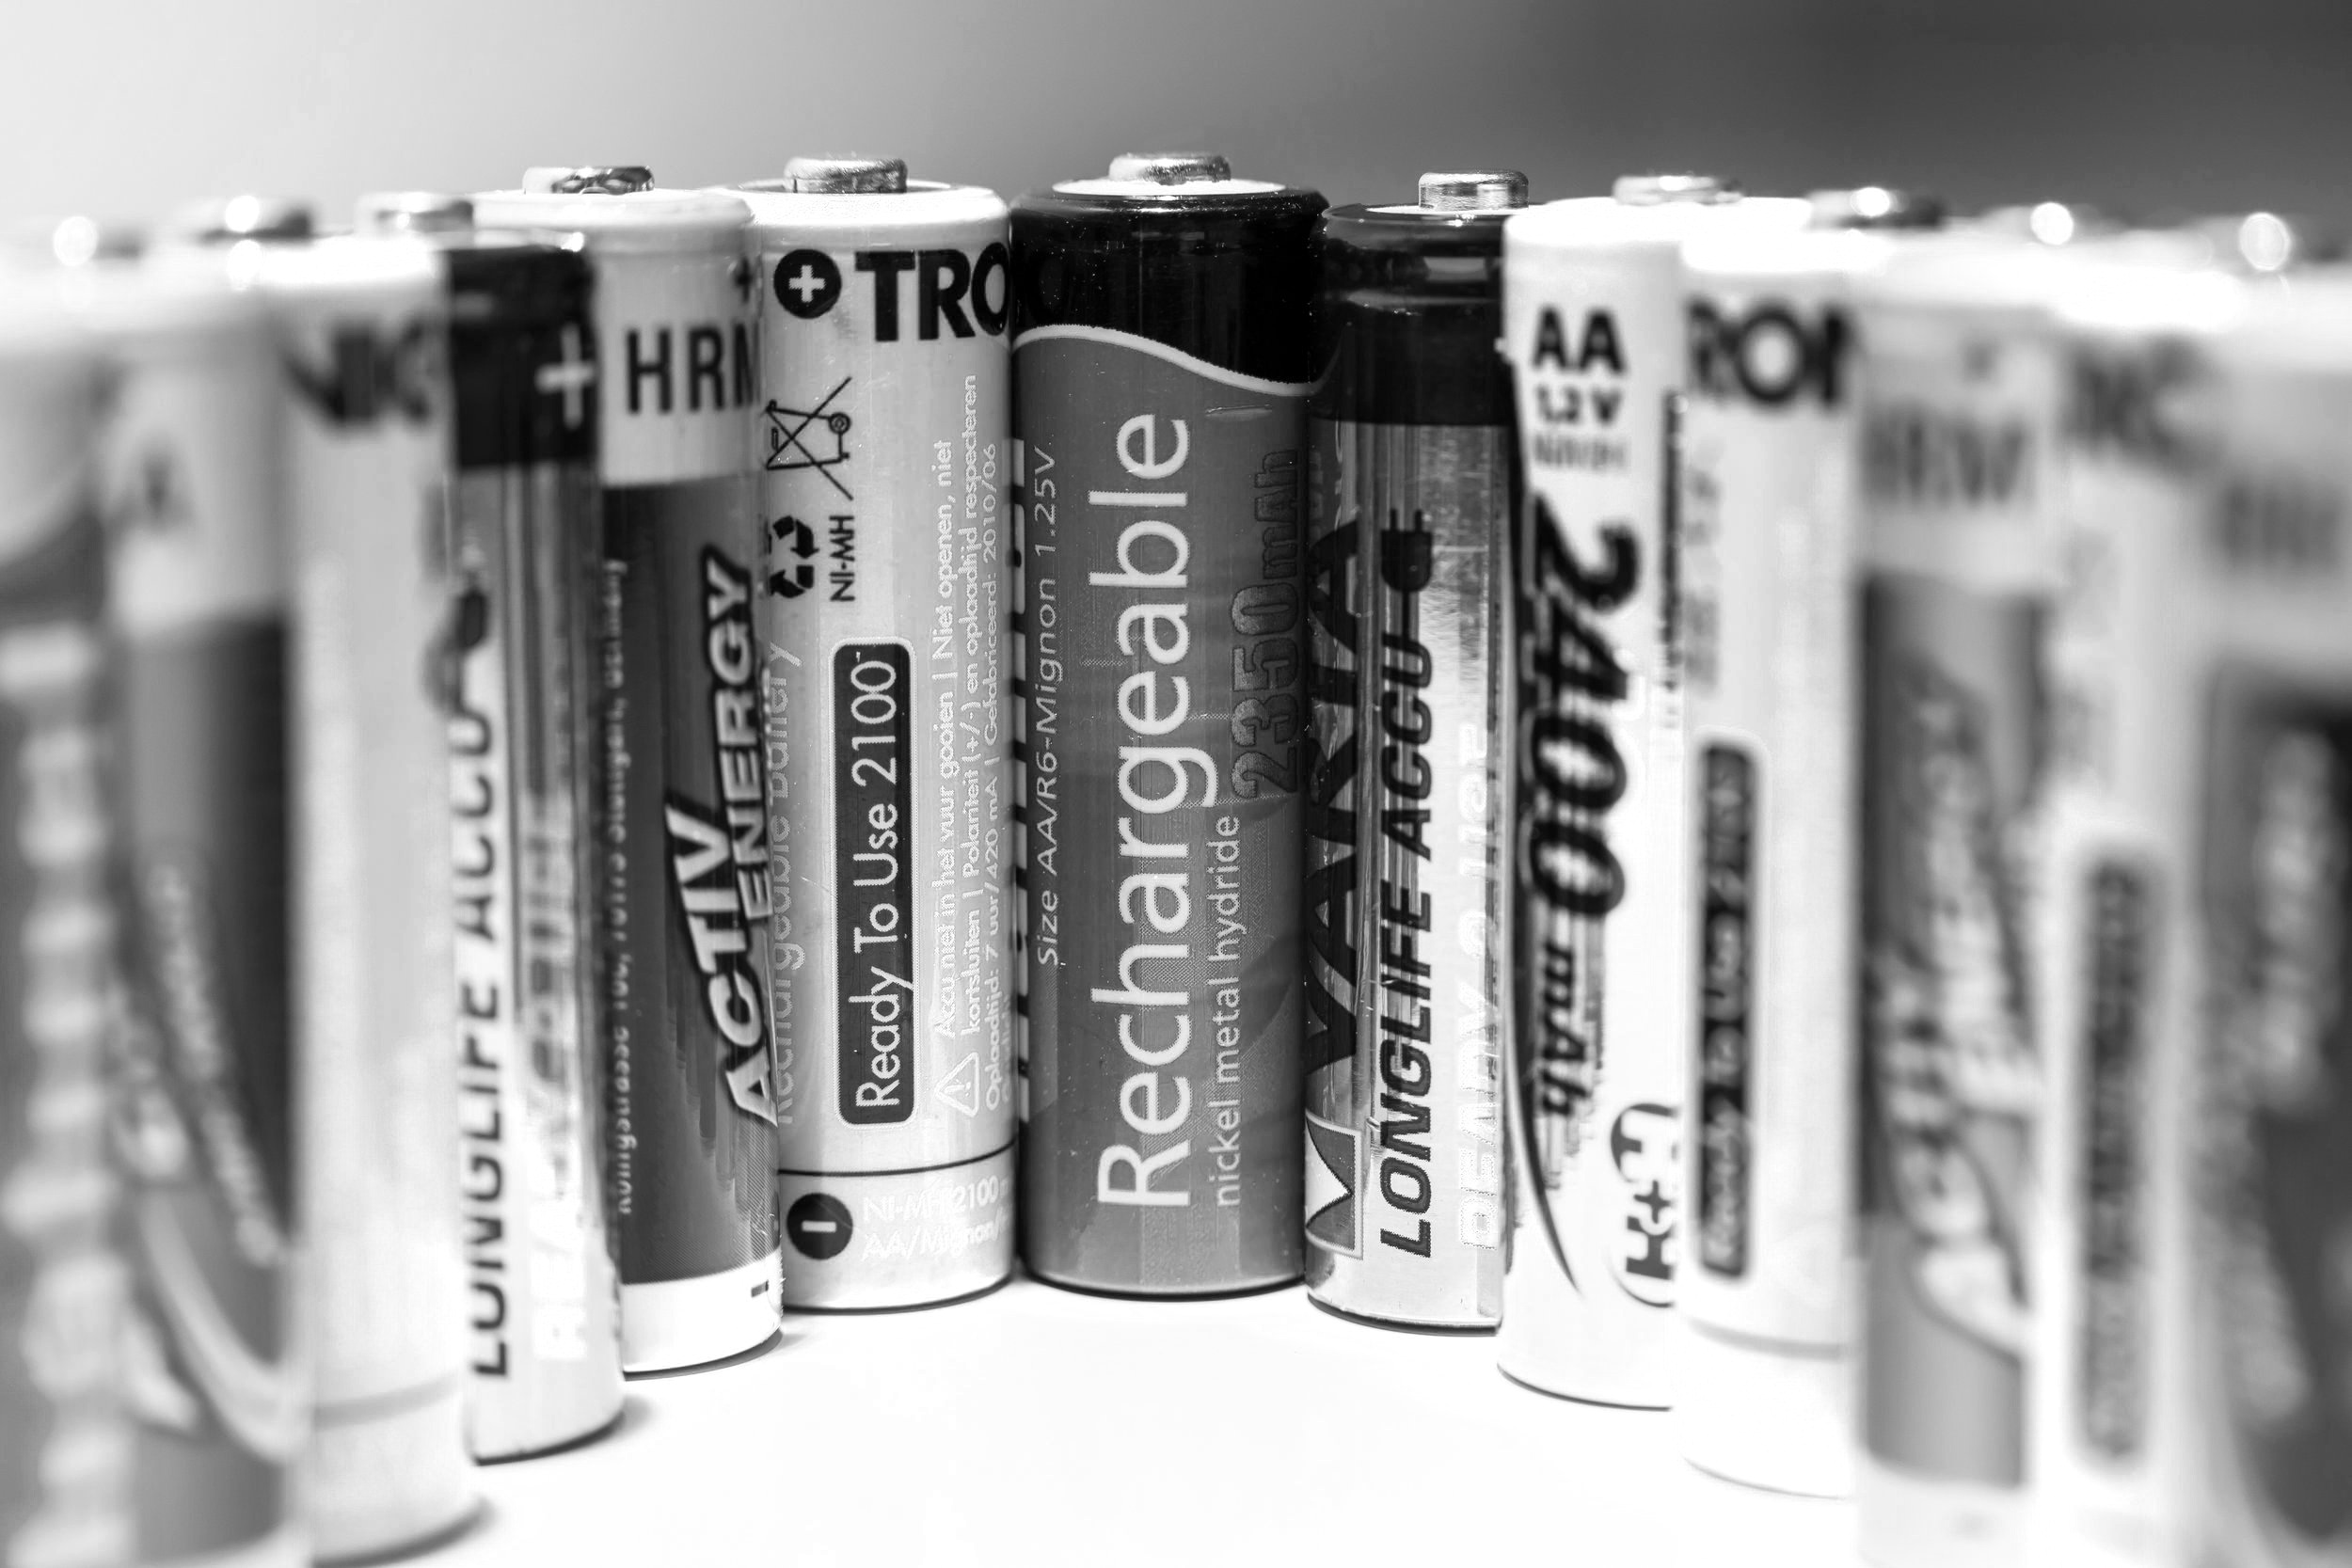 Canva+-+Battery%2C+Energy%2C+Current%2C+Electrically%2C+Power+Supply.jpg